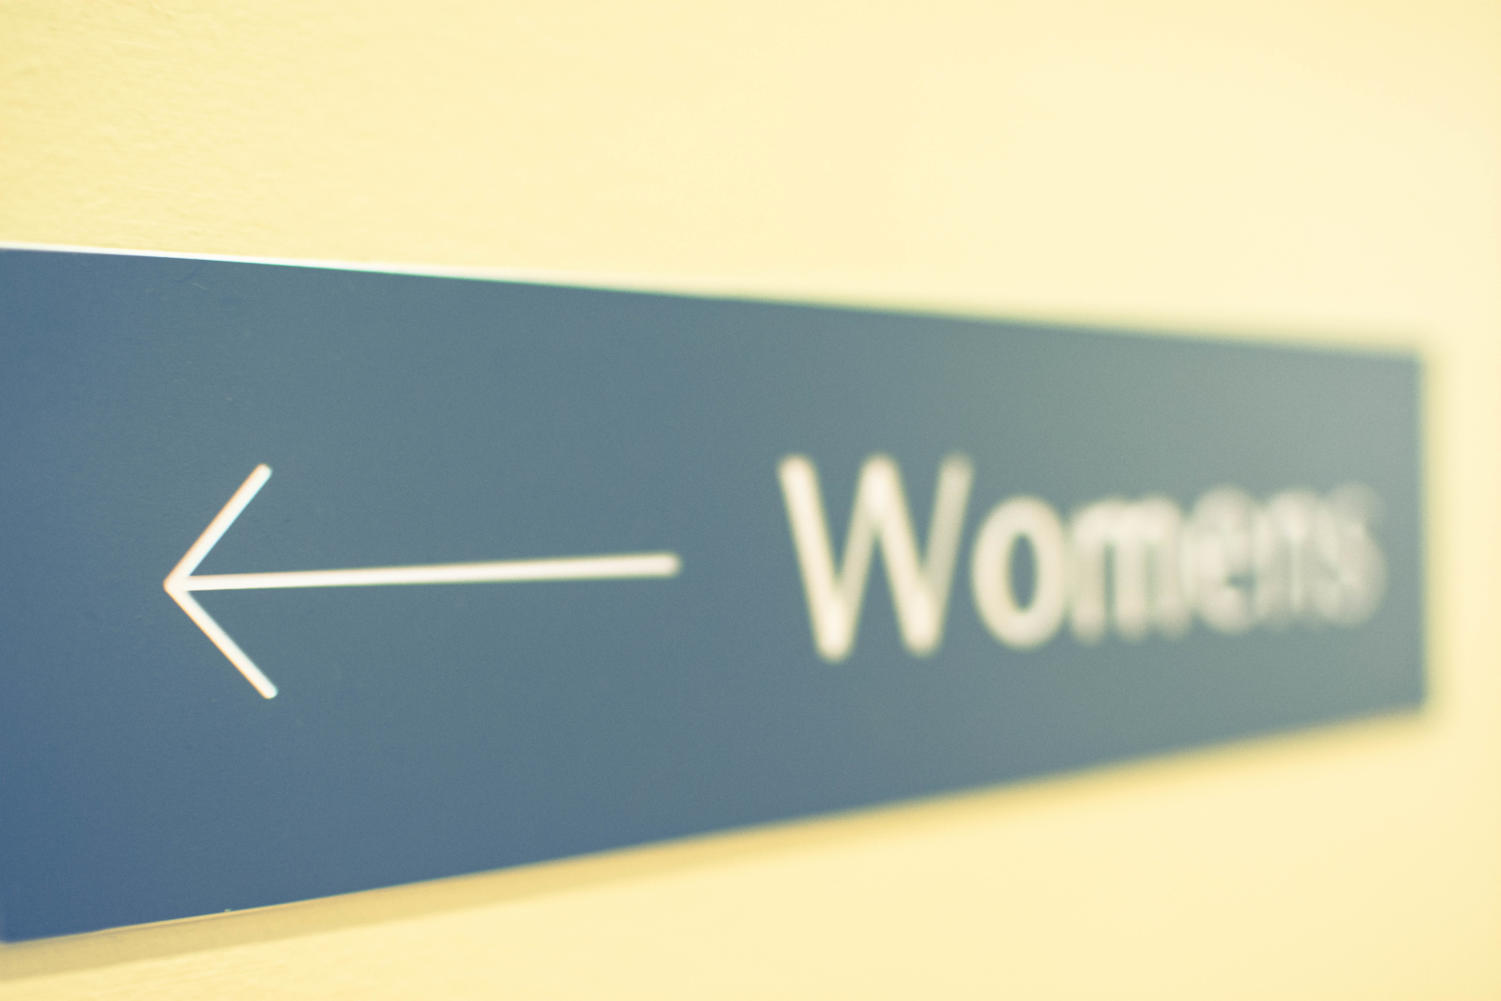 Women's rooms tend to have longer lines because of the female anatomy and the amount of space toilet stalls take up.